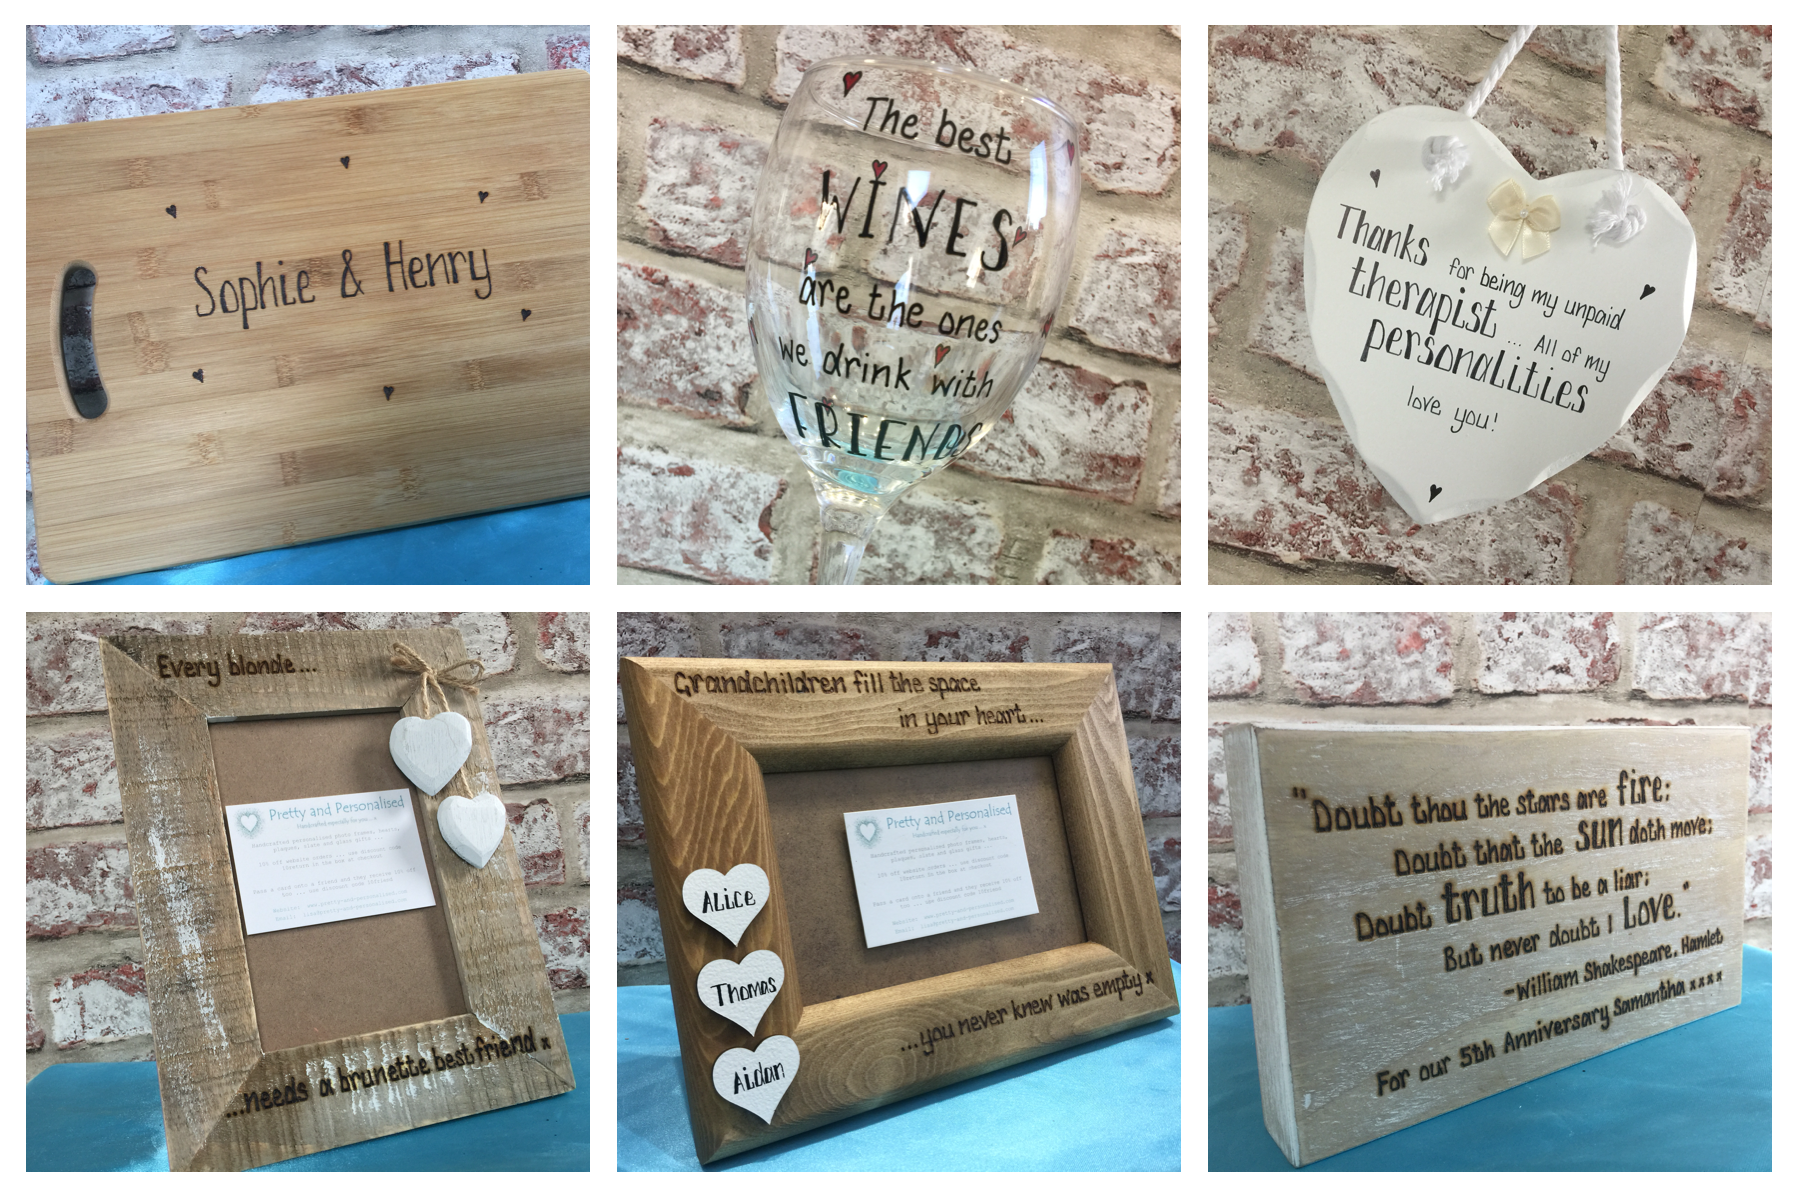 A range of handcrafted personalised gifts